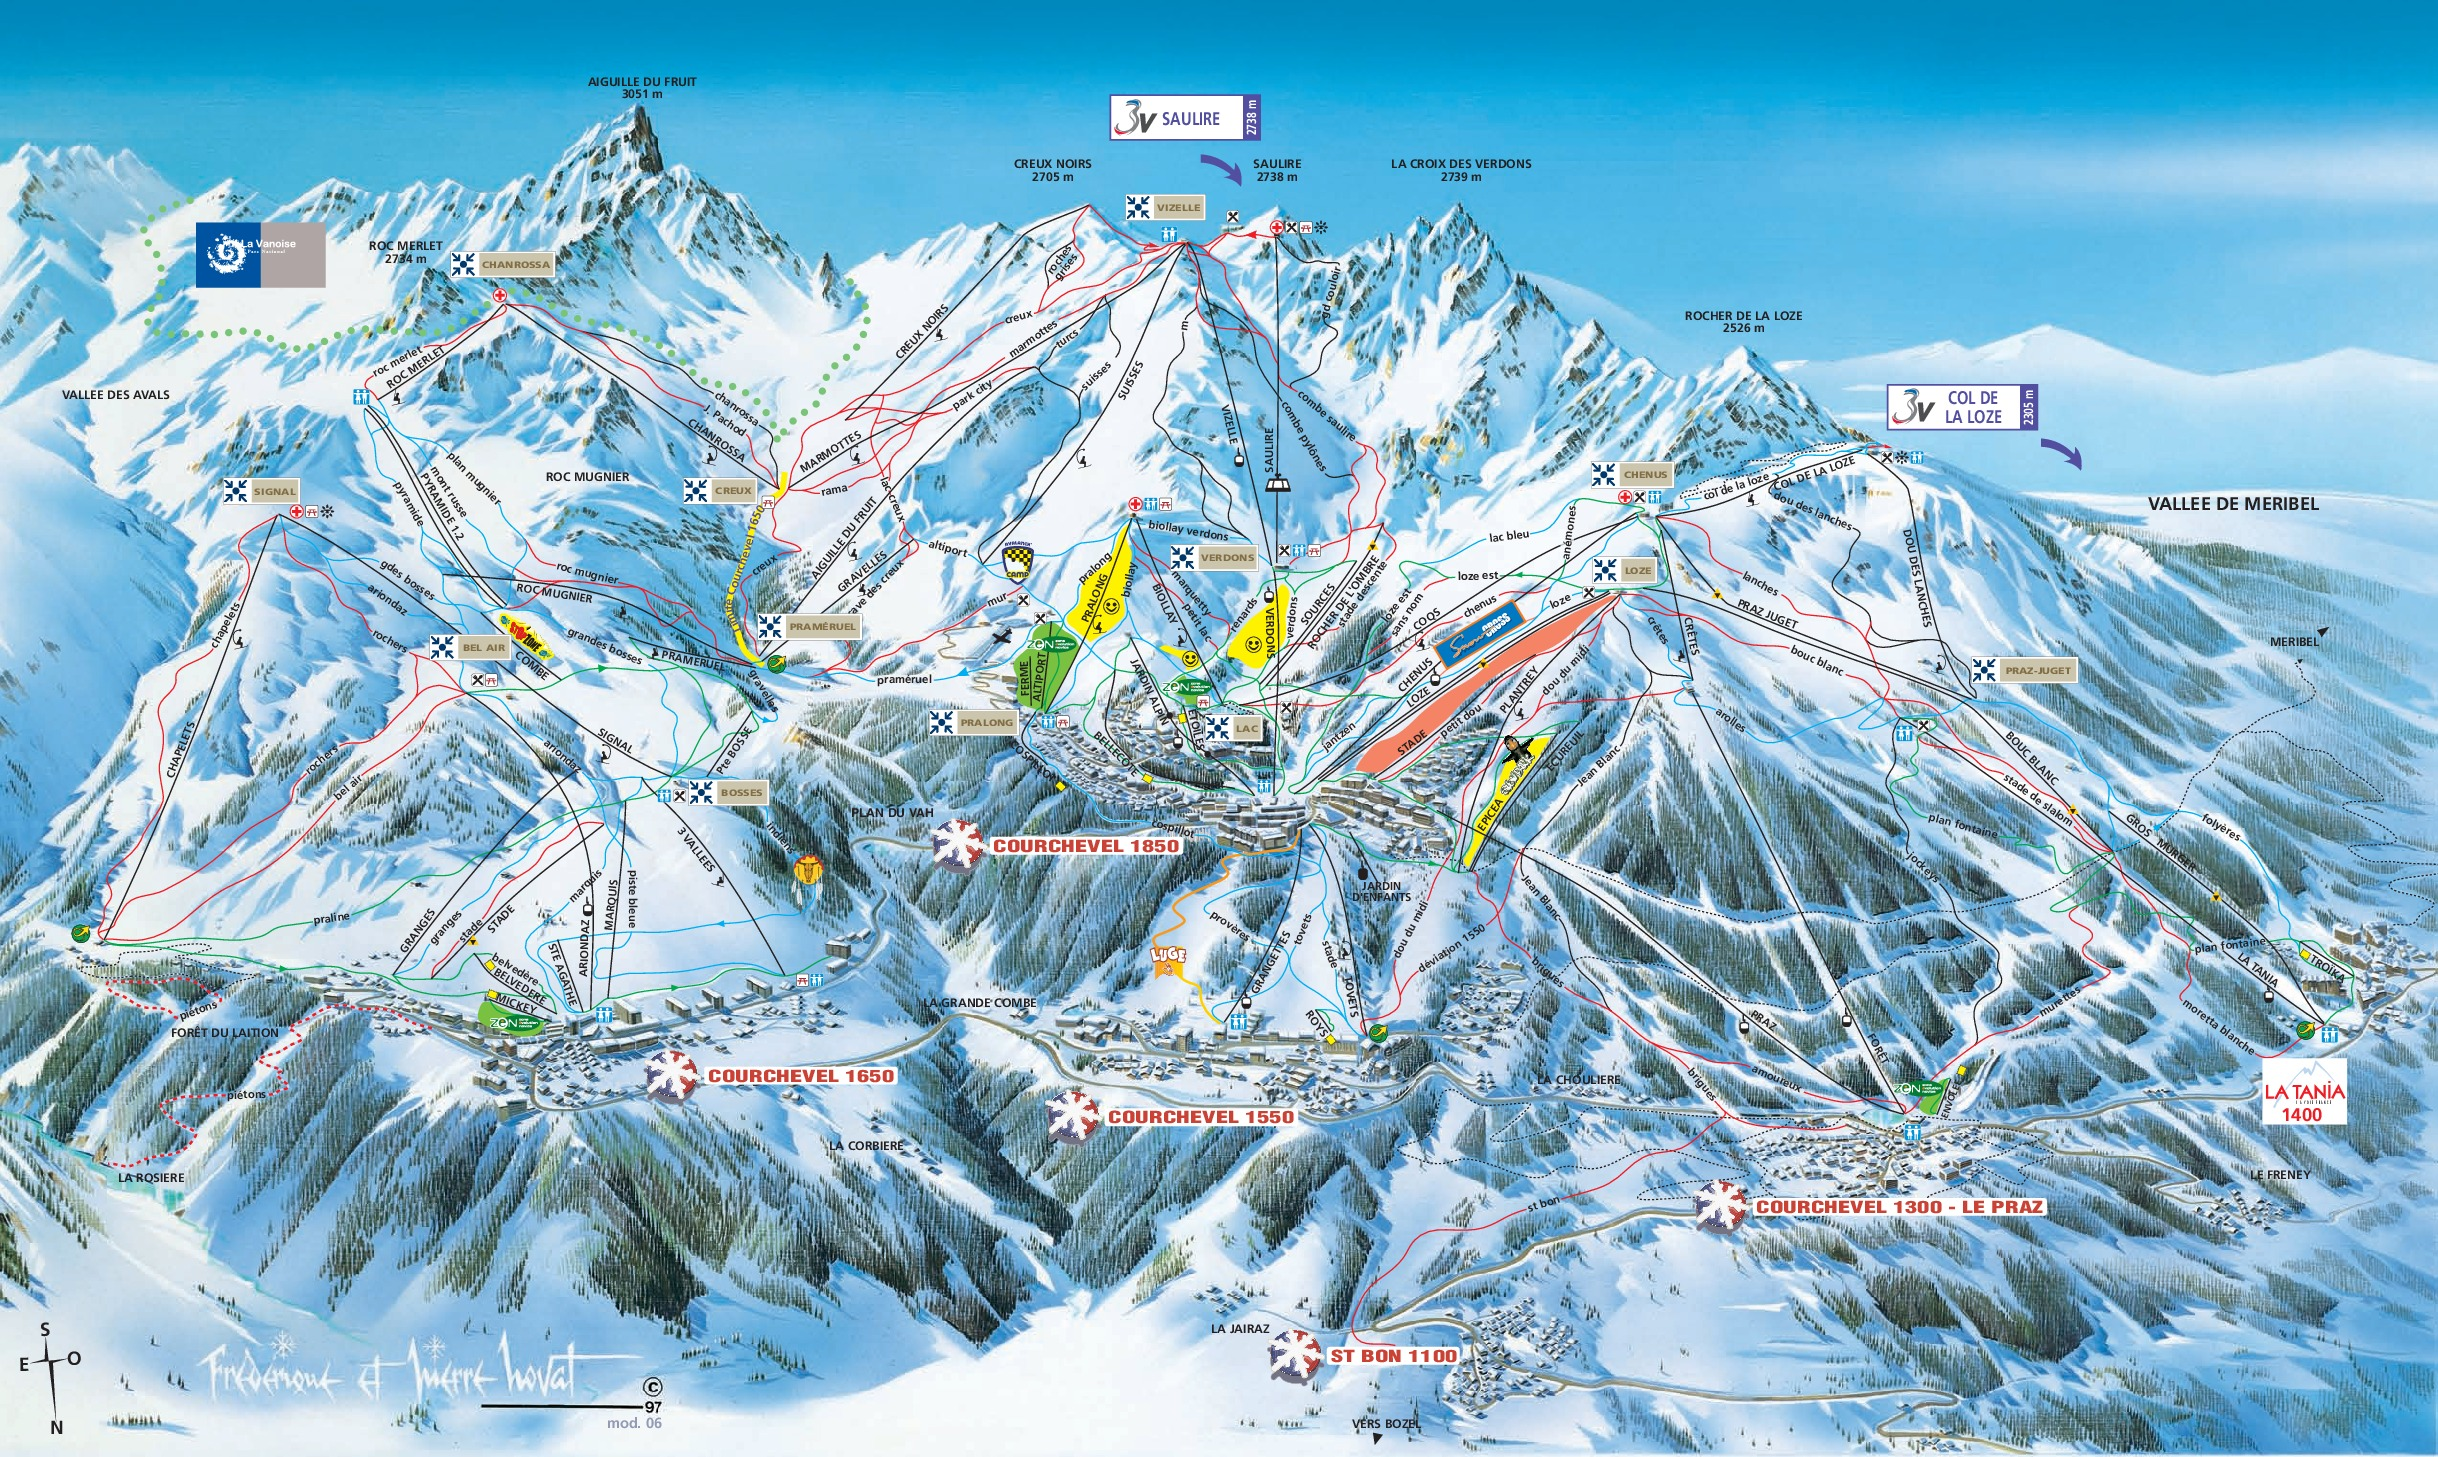 Courchevel Trail map